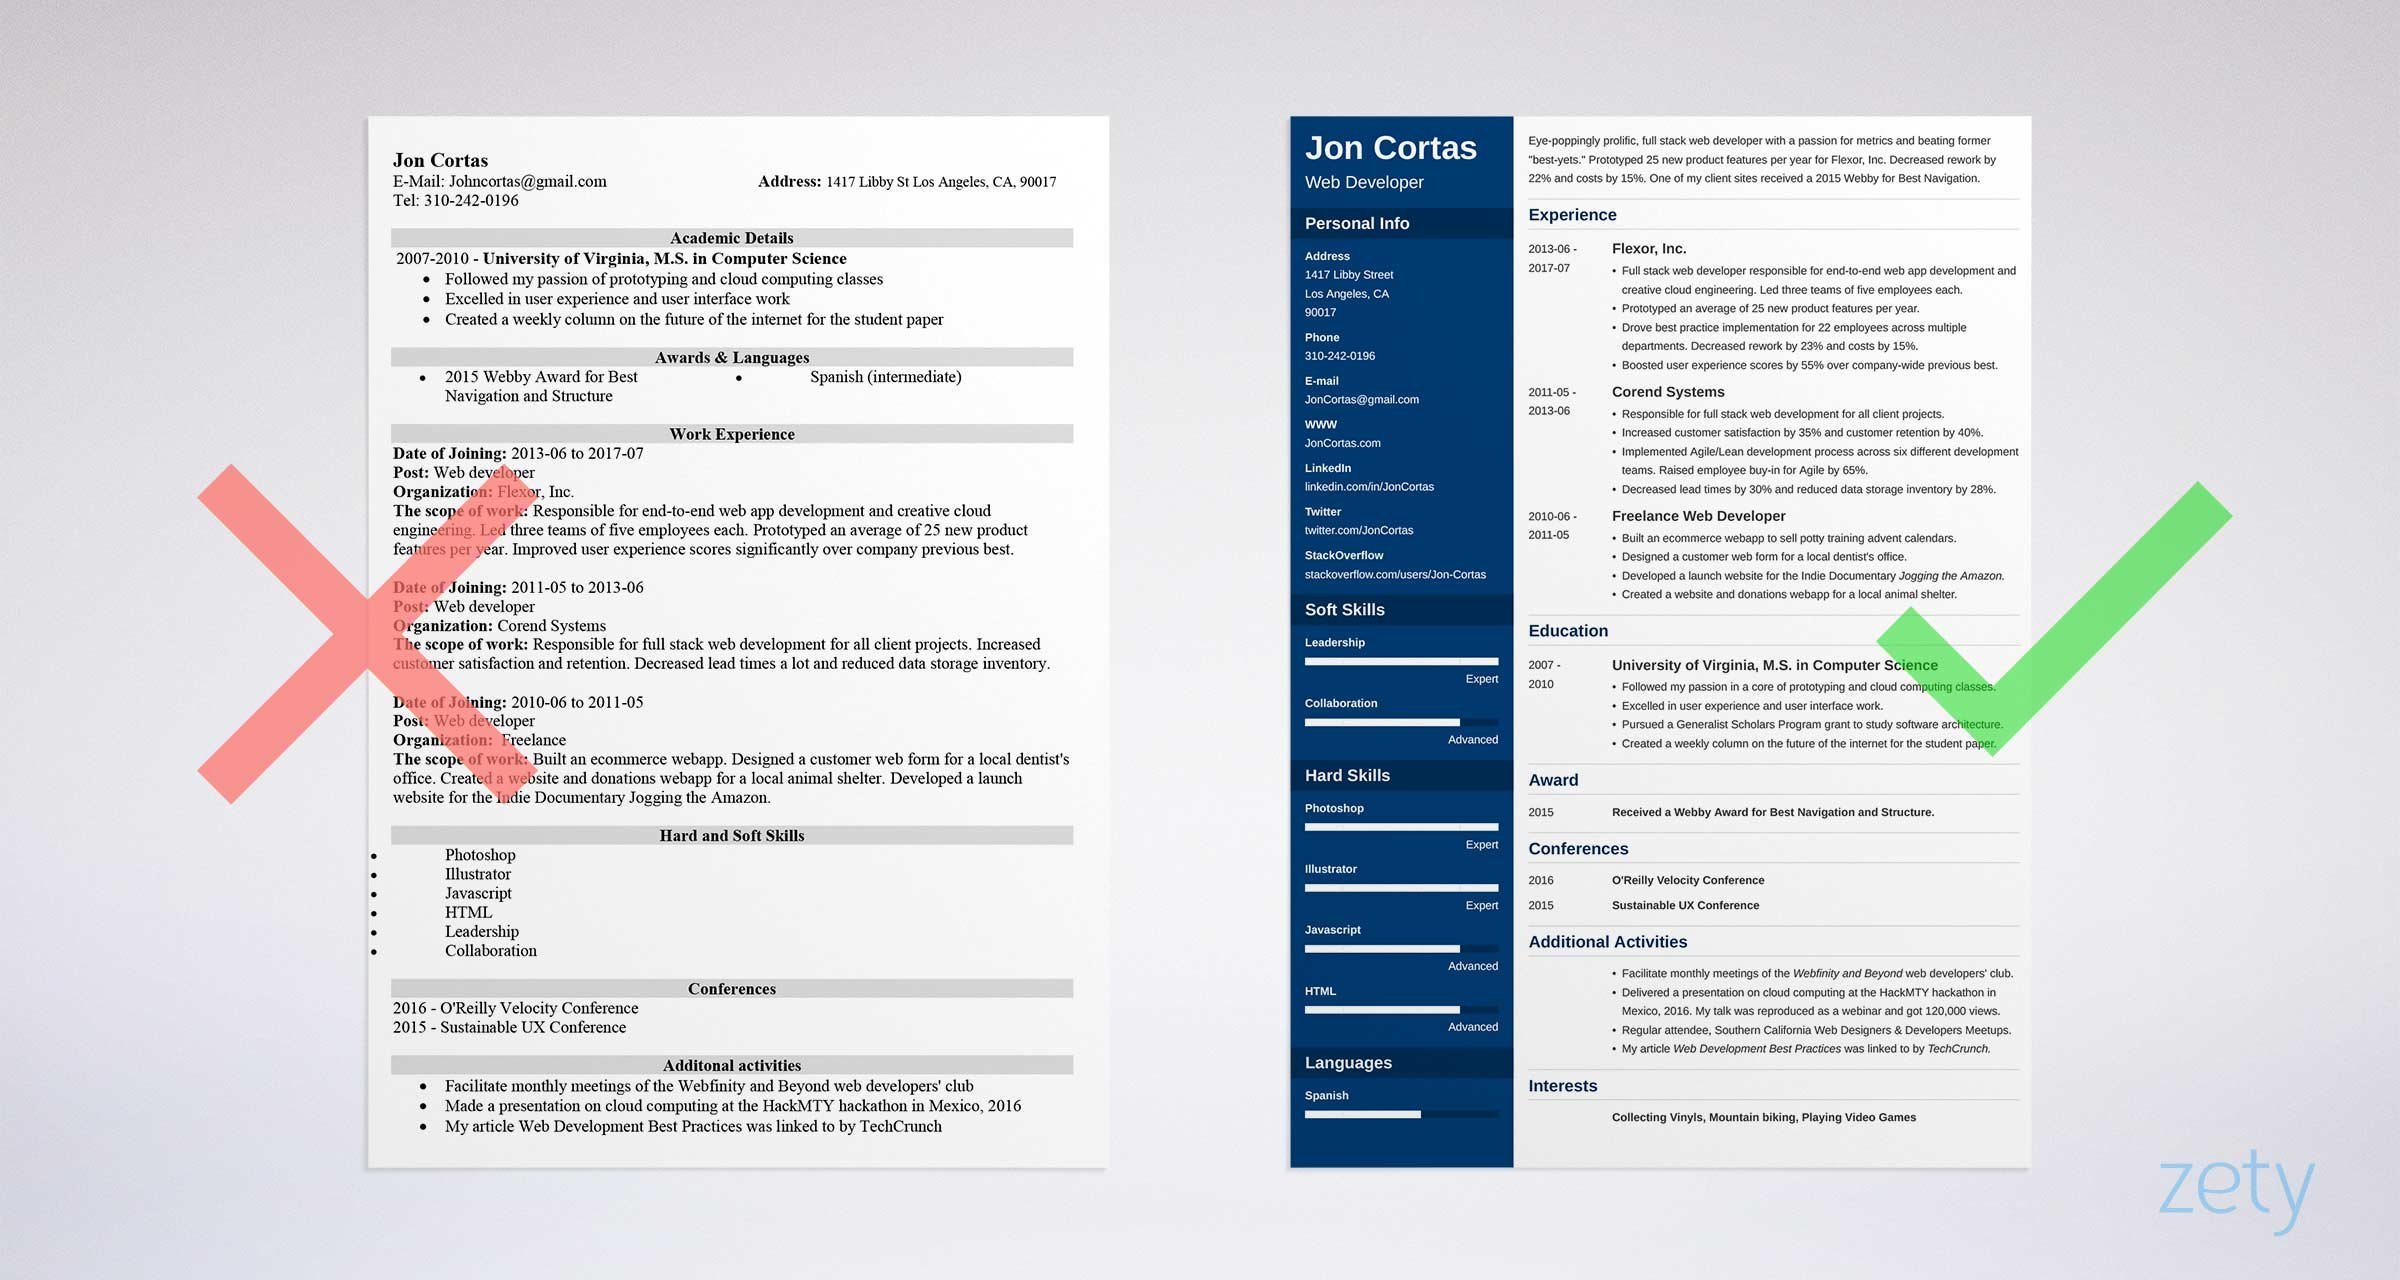 poor and best resume templates comparison - Best Resume Template 2016